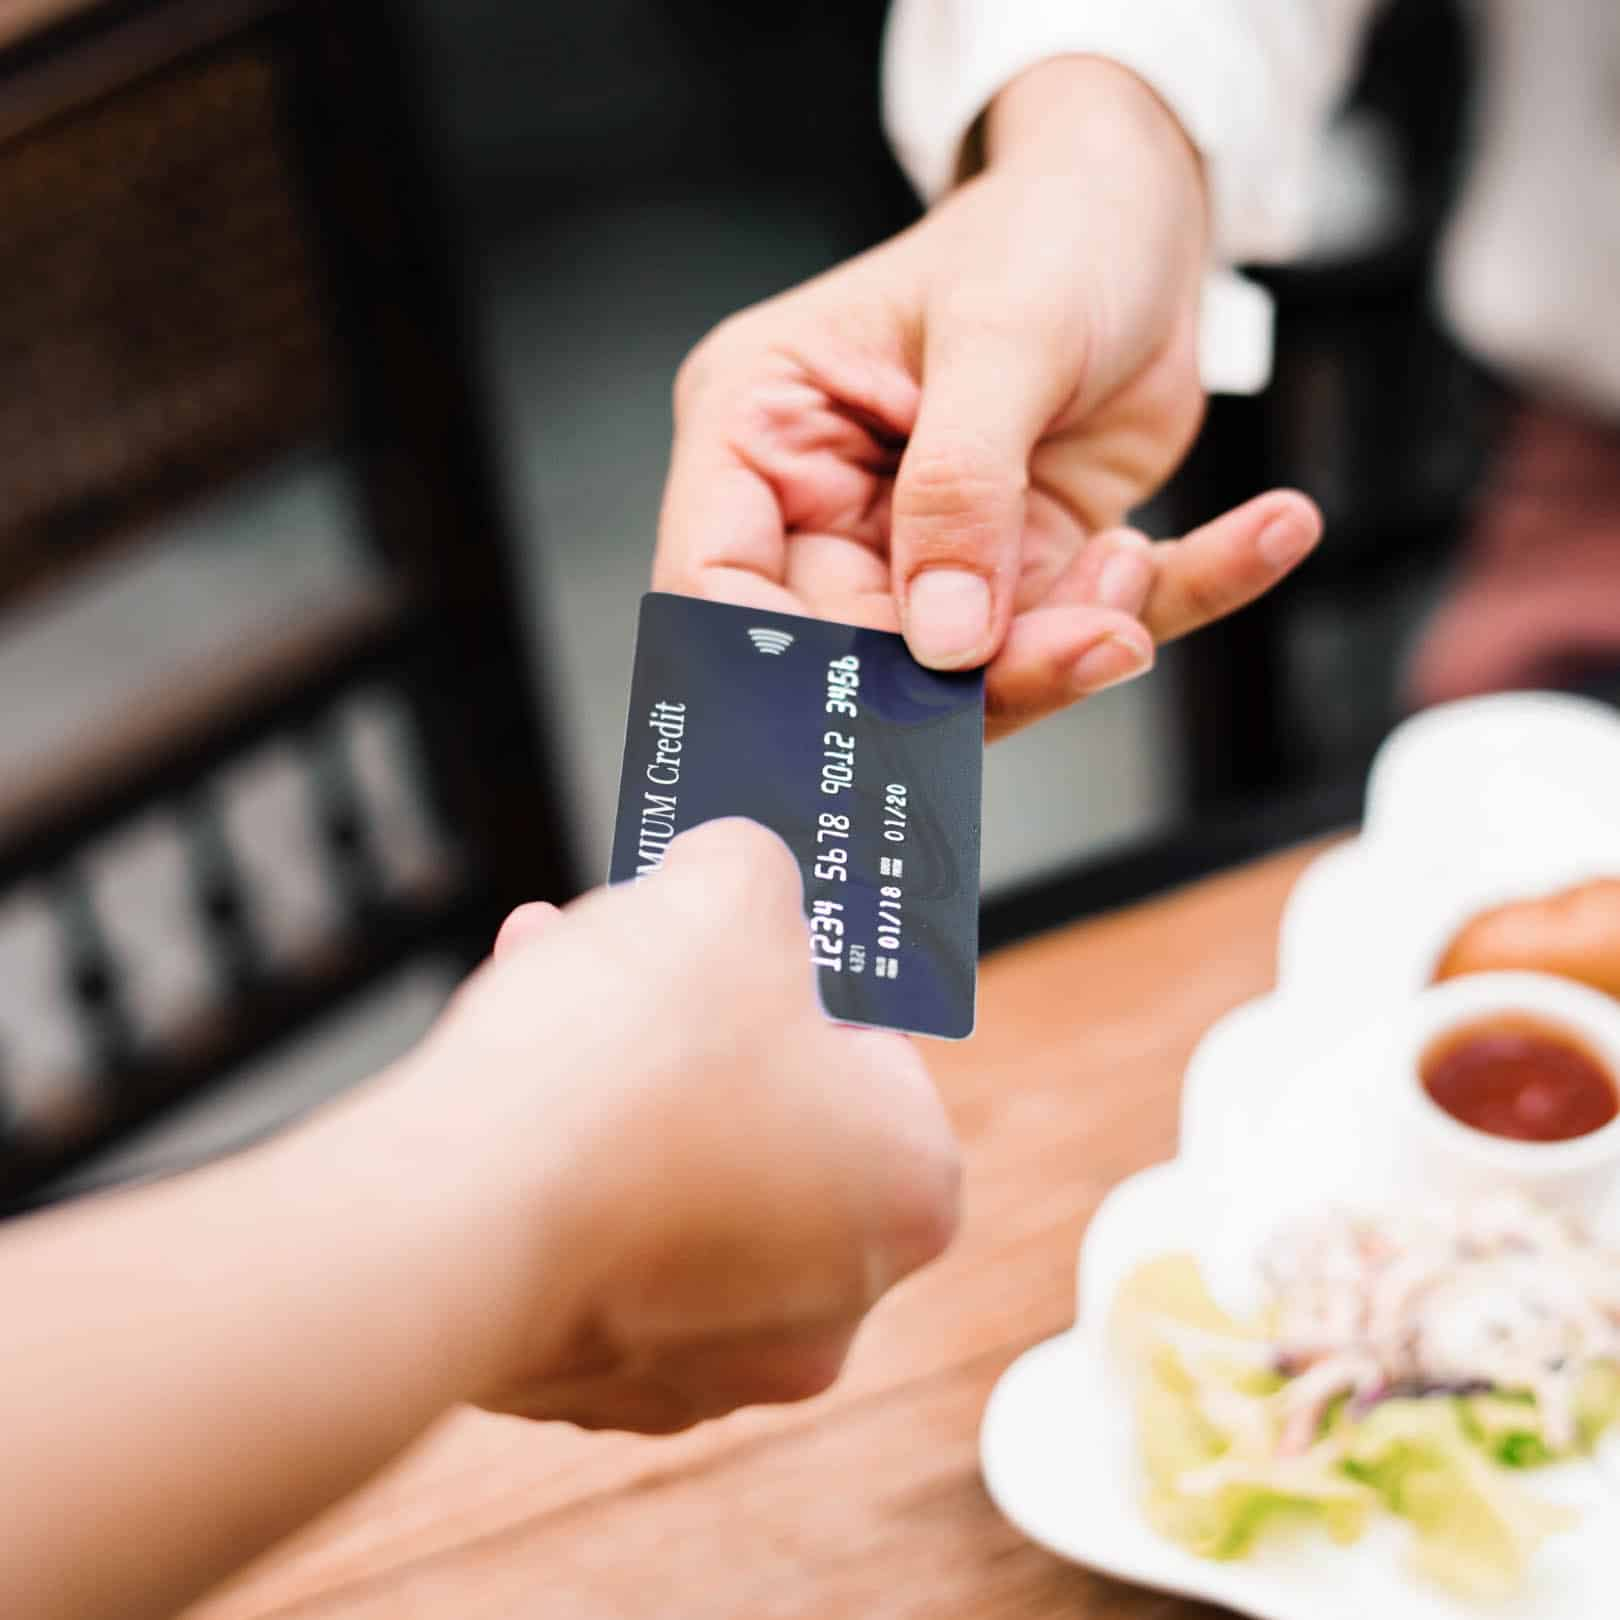 Millennials, This Is Why You Need A Rewards Credit Card by millennial blogger the confused millennial